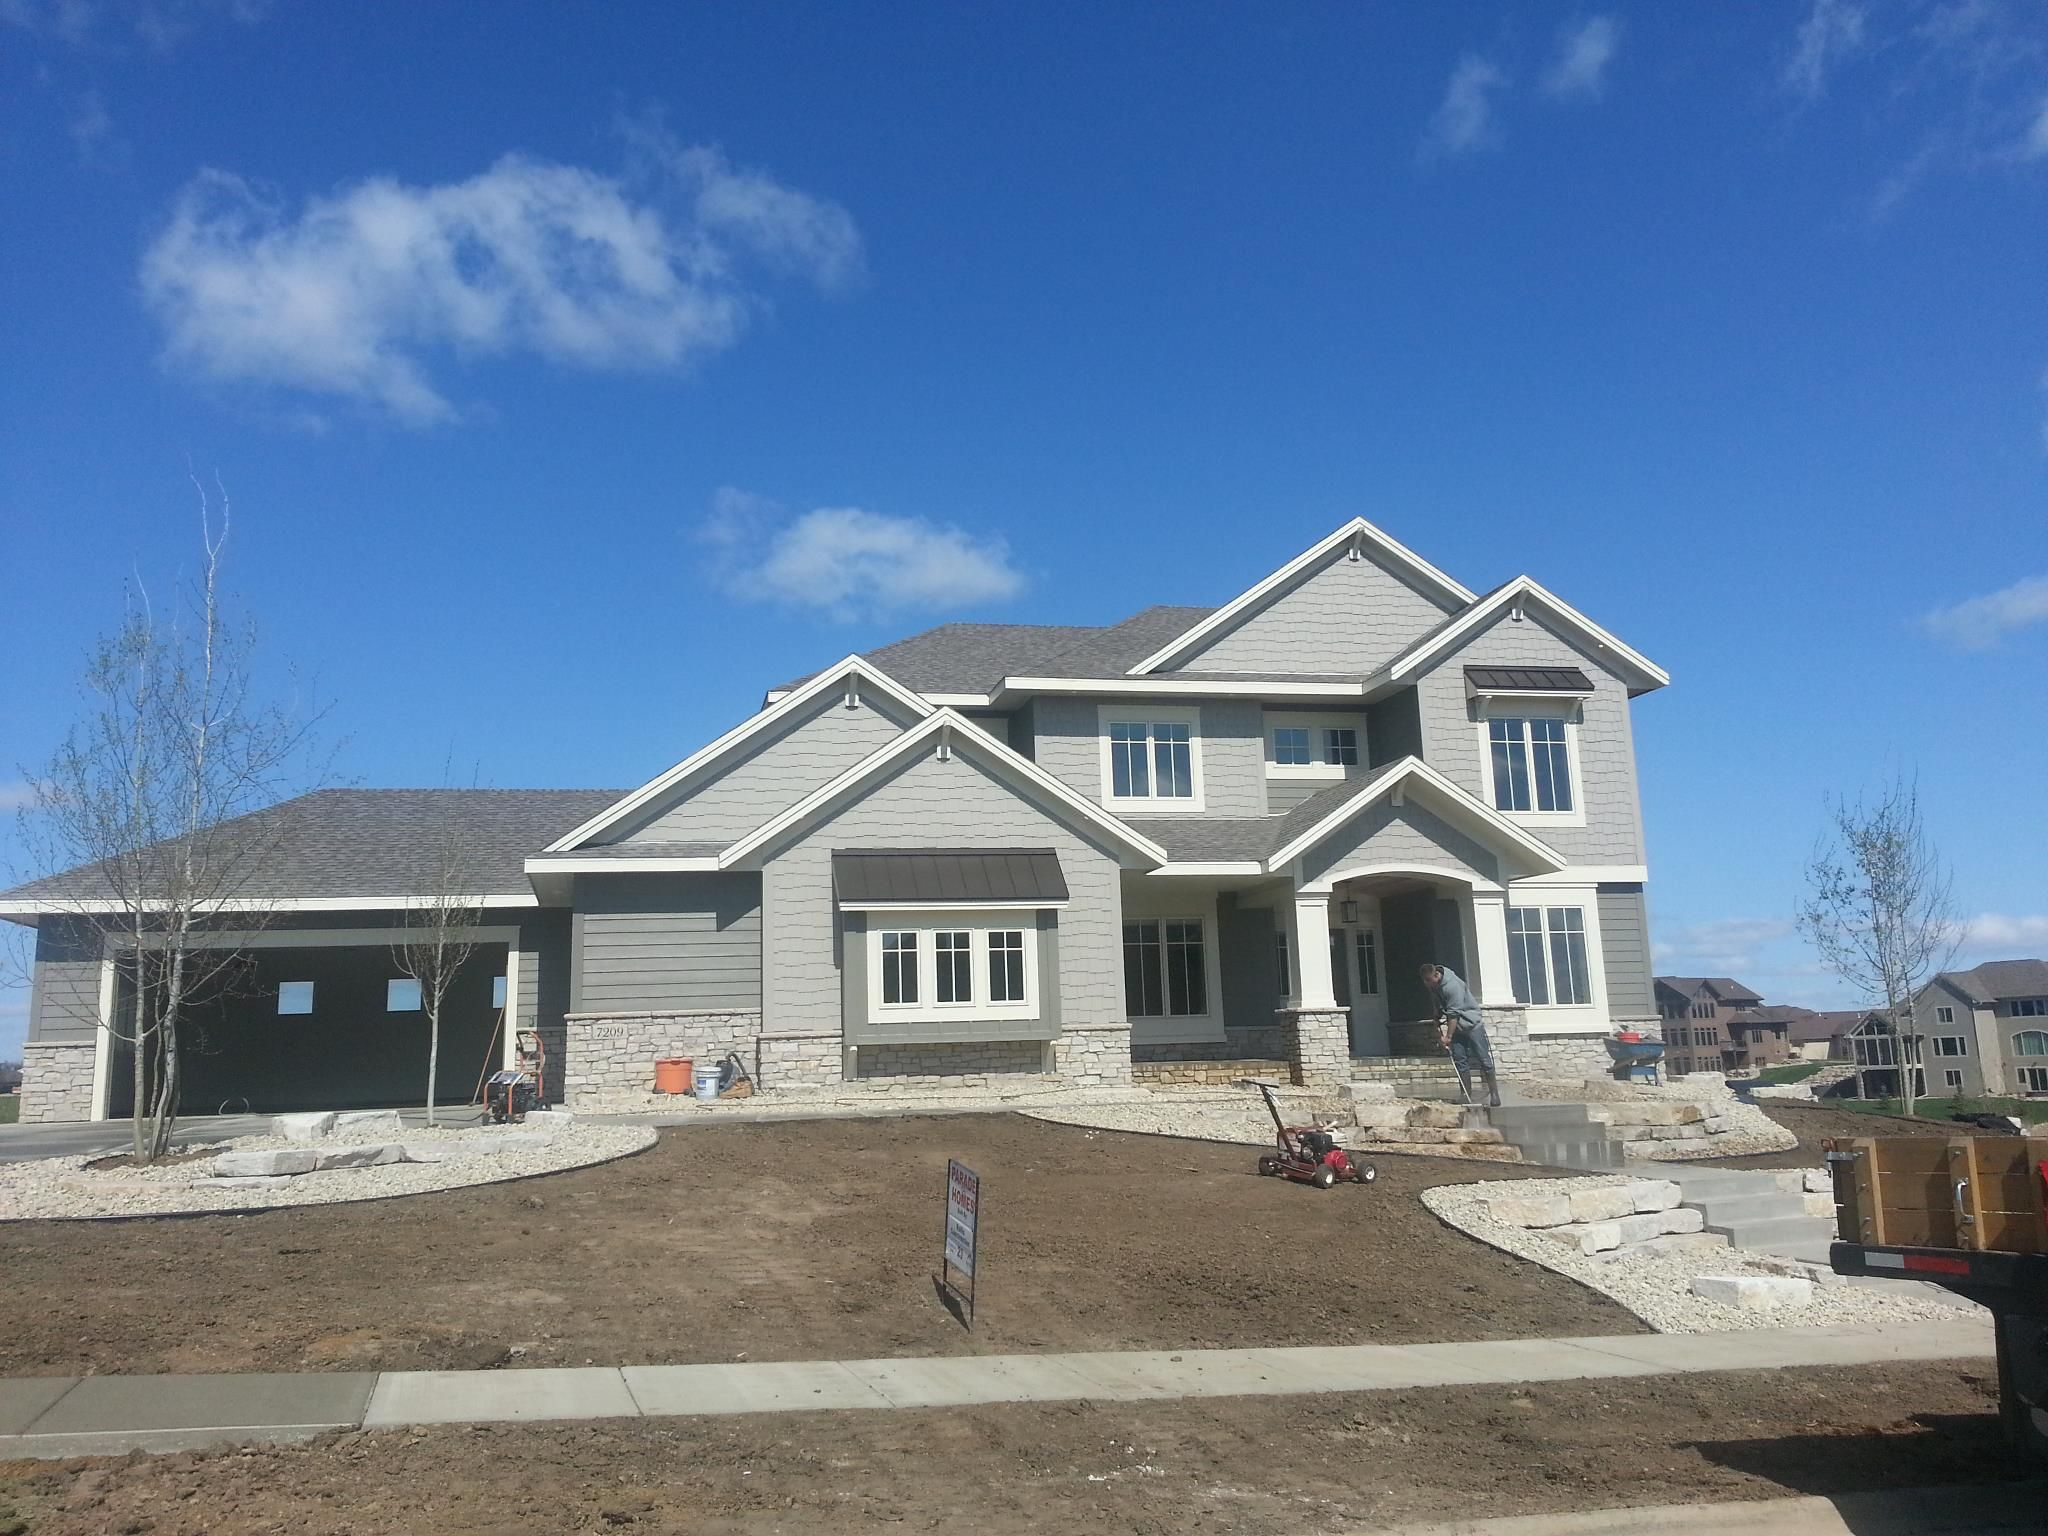 Home builders in sioux falls sd - Rallis Construction Sioux Falls Sd 2013